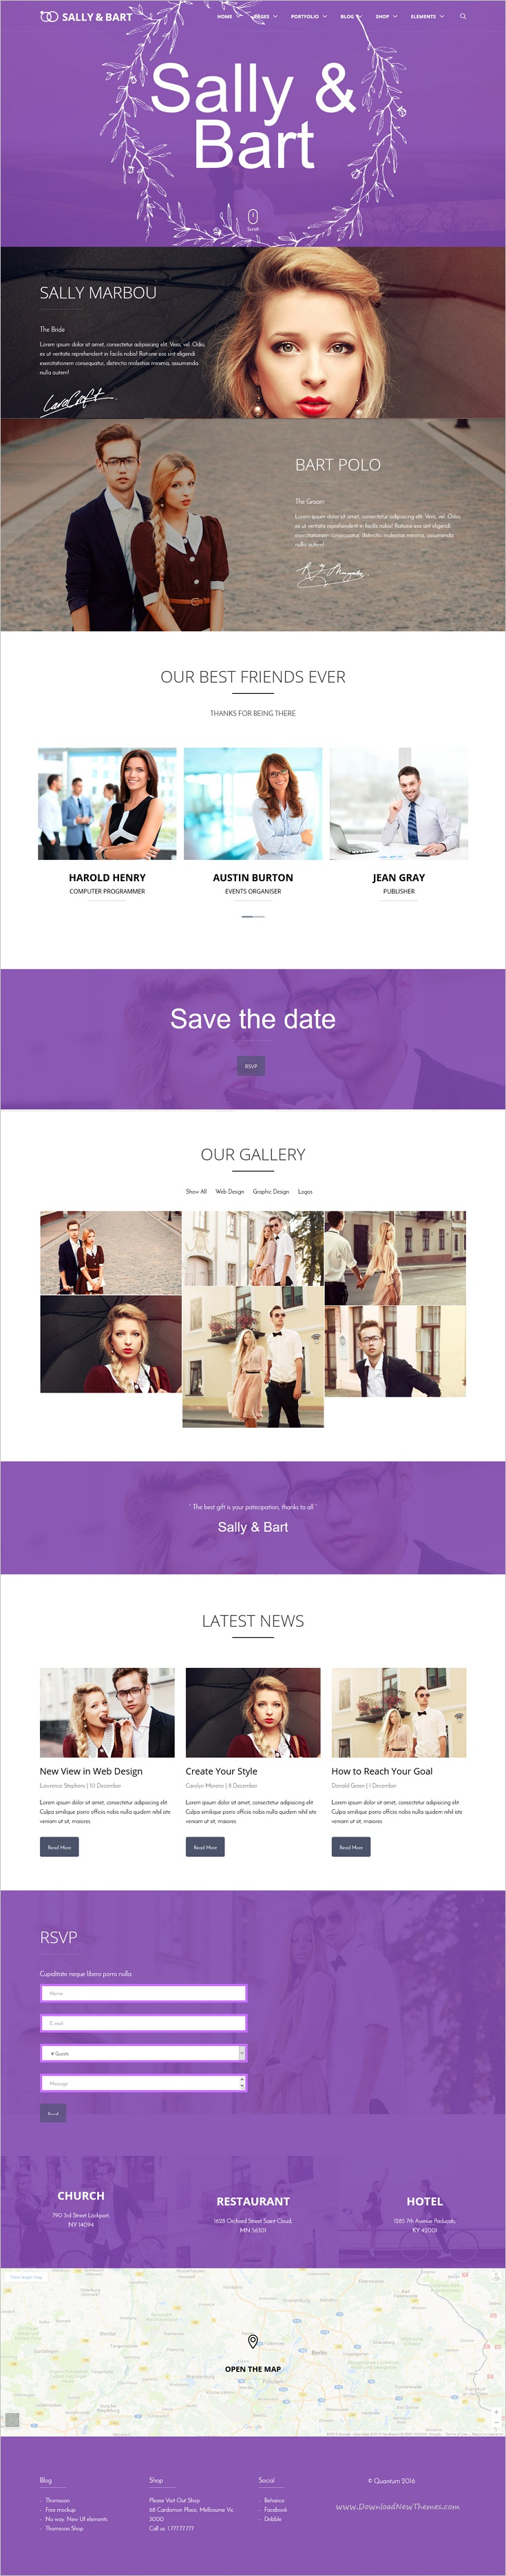 Pin By Web Design Inspiration On Best Wedding Template Templates Web Design Inspiration Html5 Templates